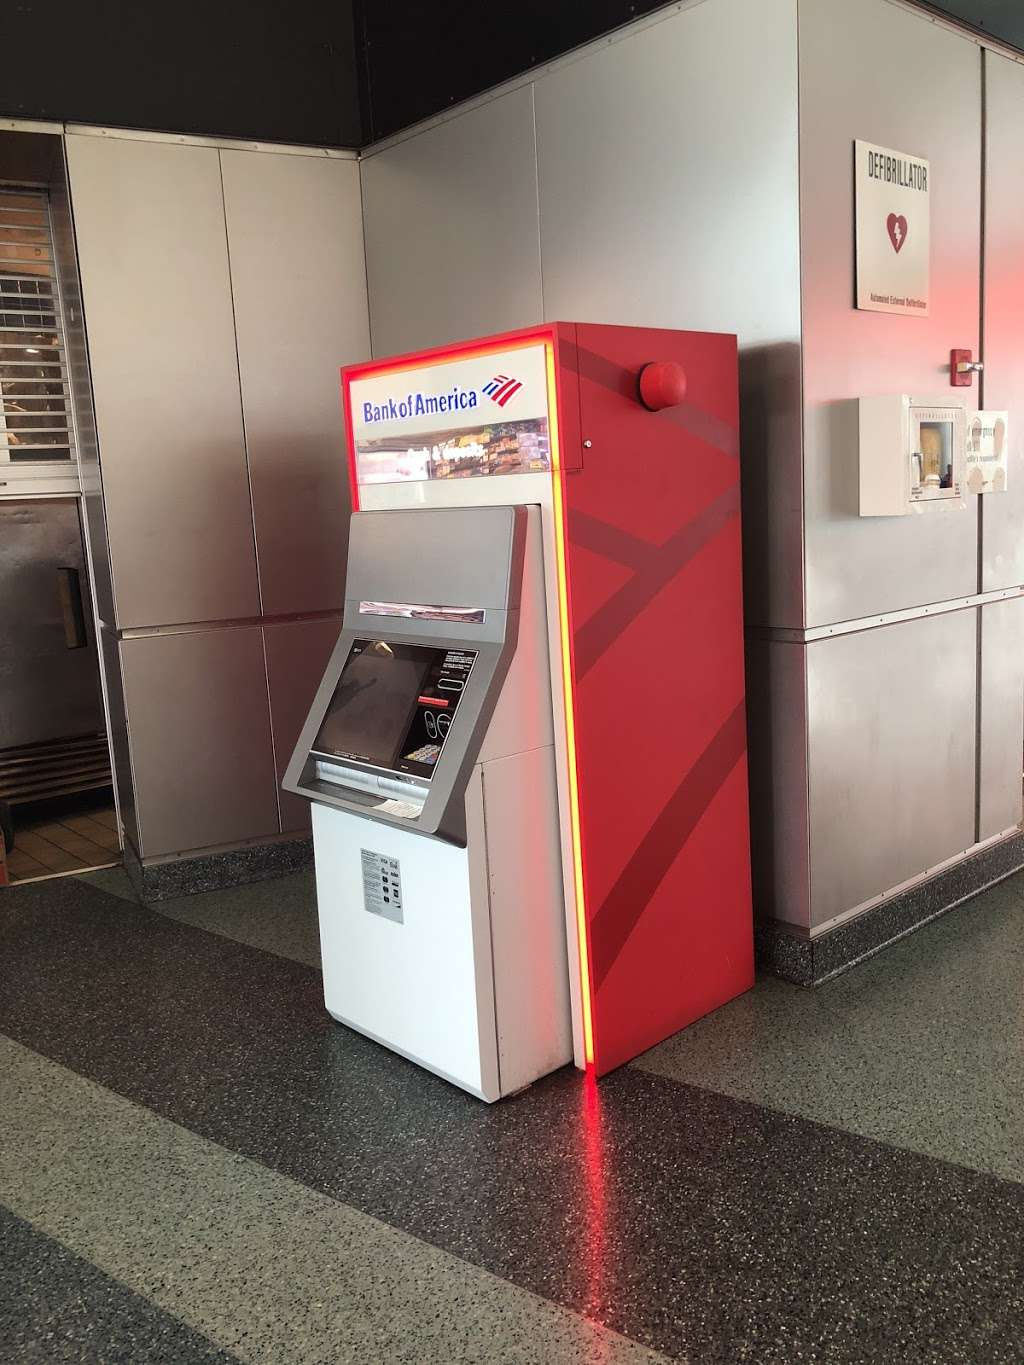 Bank of America ATM - atm  | Photo 1 of 3 | Address: 4 South St, New York, NY 10004, USA | Phone: (800) 622-8731